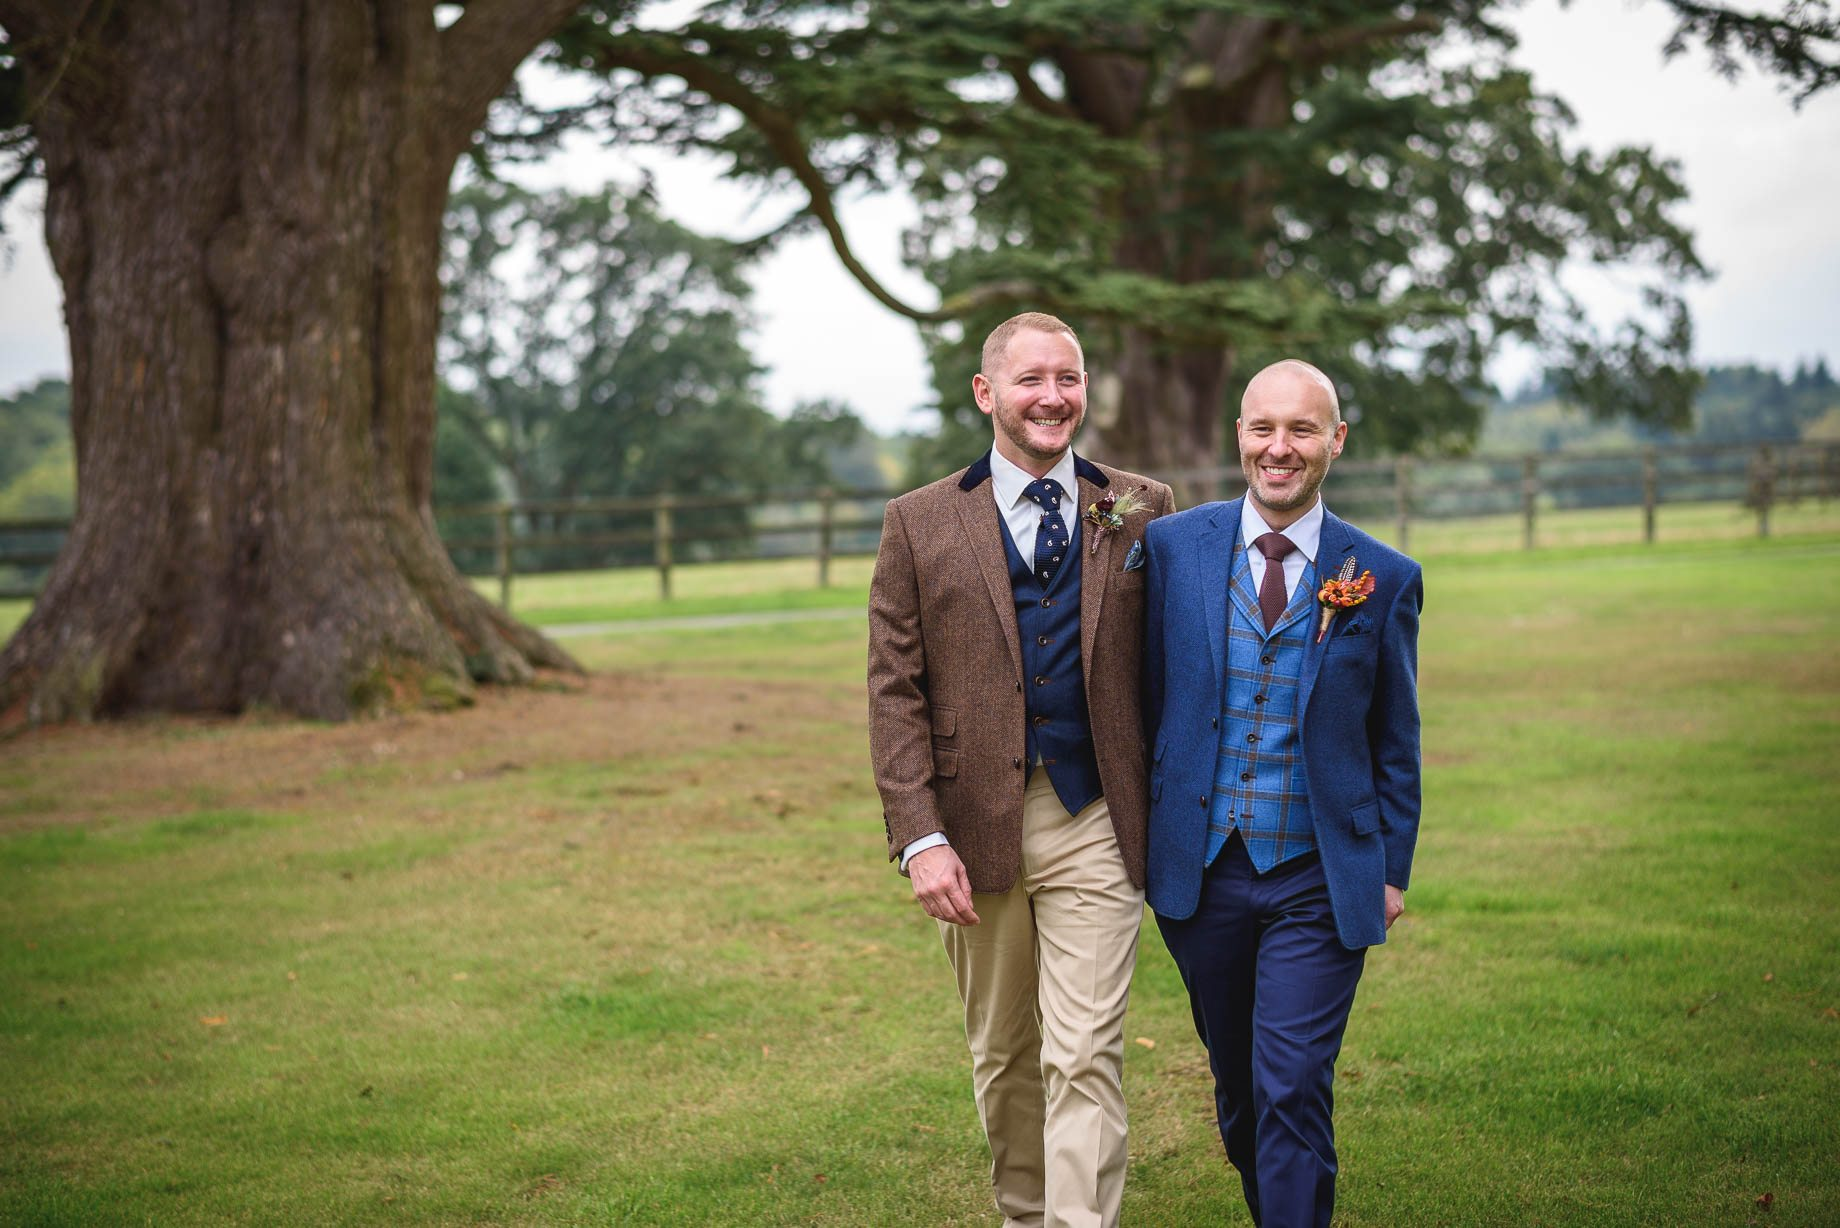 gay-wedding-photography-at-wasing-park-guy-collier-photography-ben-and-stephen-106-of-202